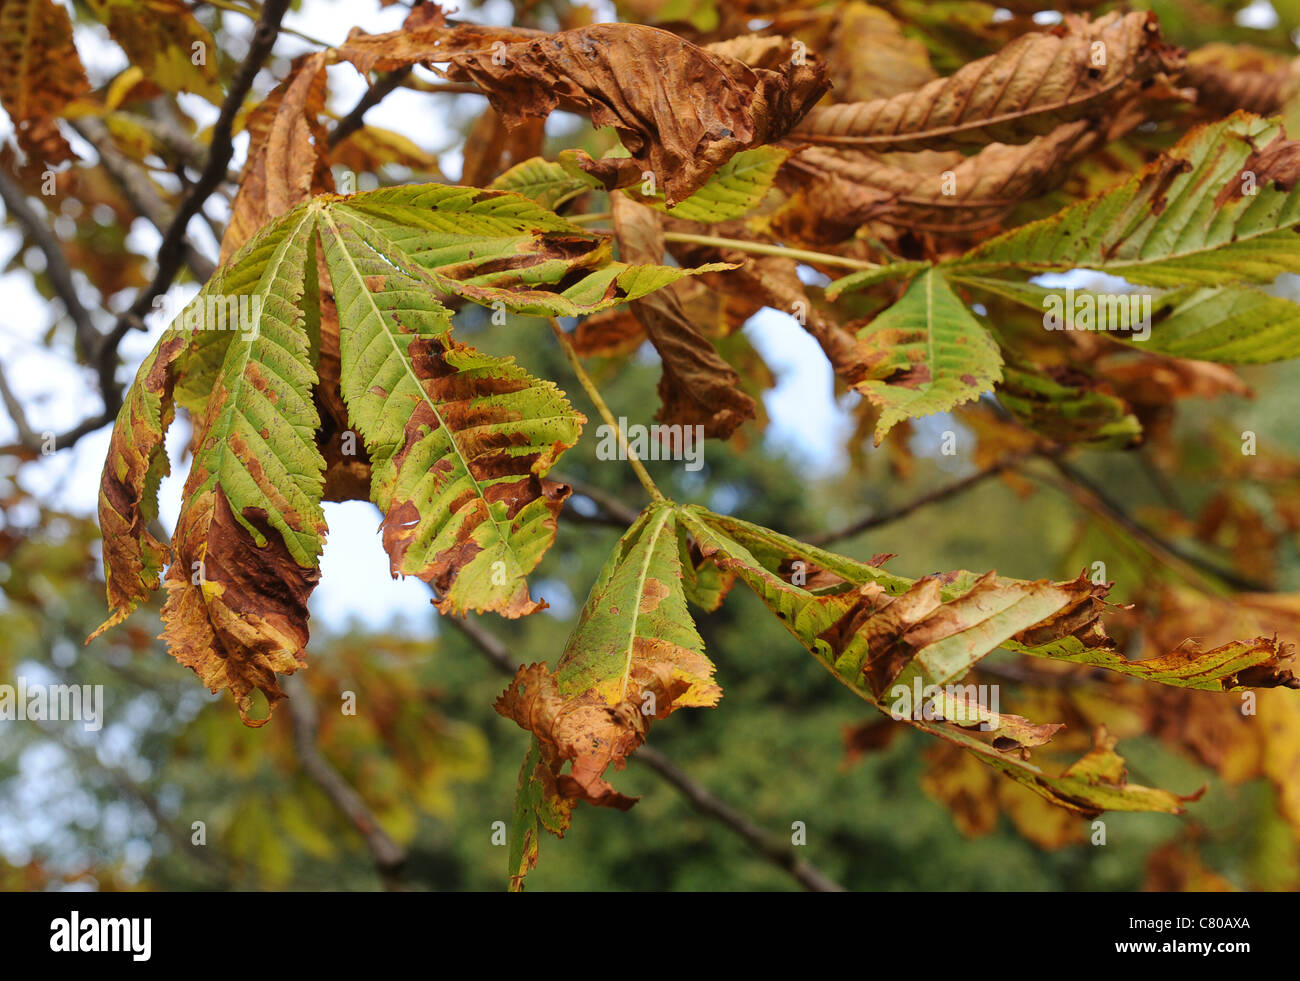 Diseased Horse Chestnut (aesculus hippocastanum) leaves showing brown pattern caused by horse chestnut leaf miner - Stock Image